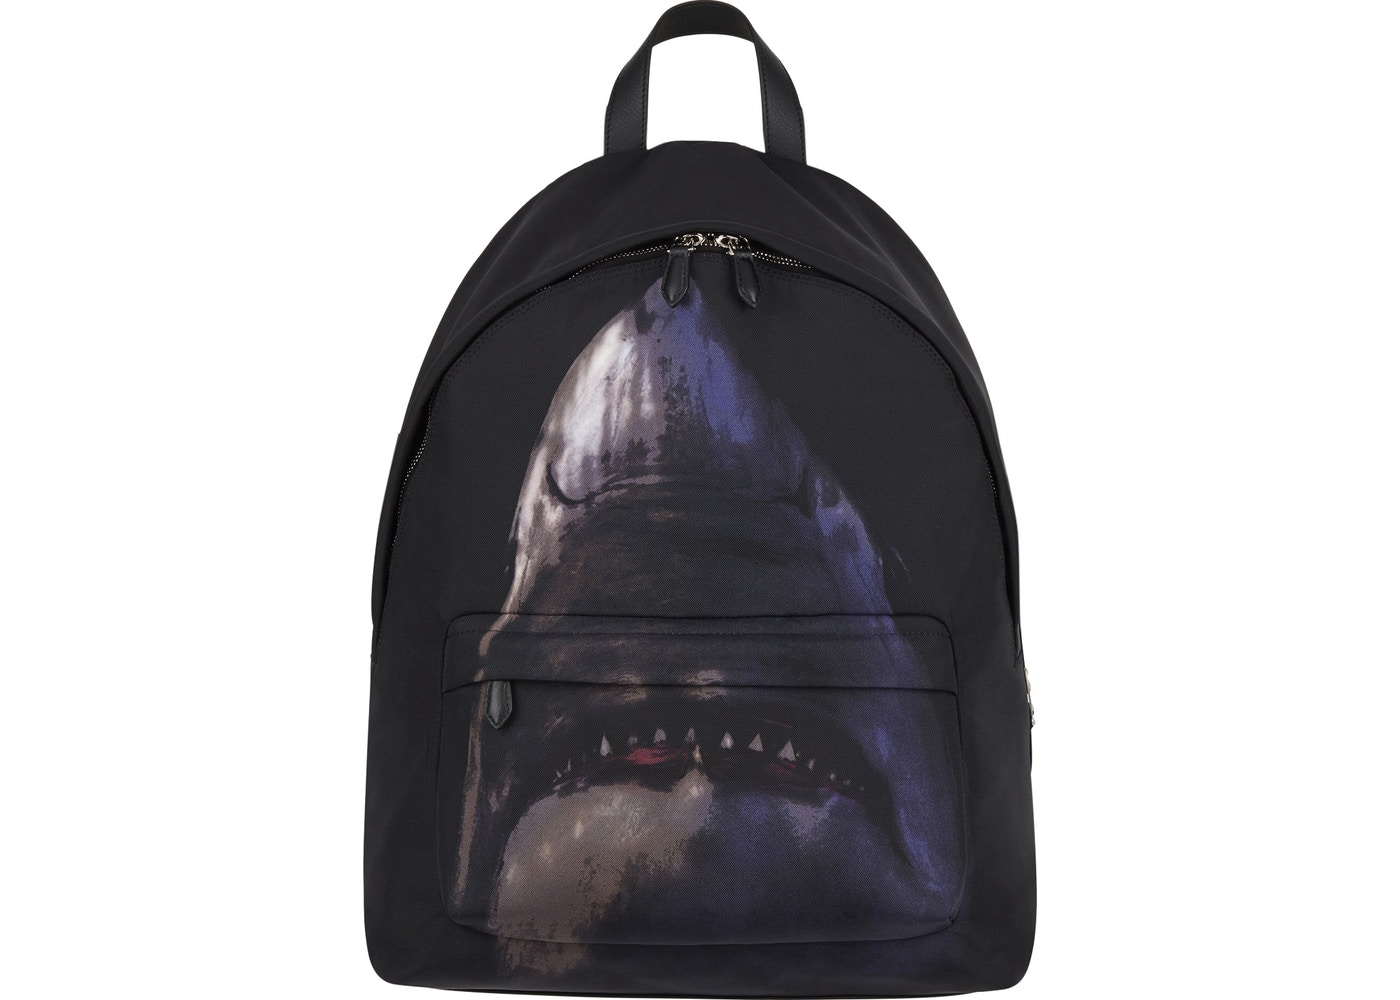 Givenchy Shark Backpack Nylon Black. Nylon Black 6dca027a6c5ce